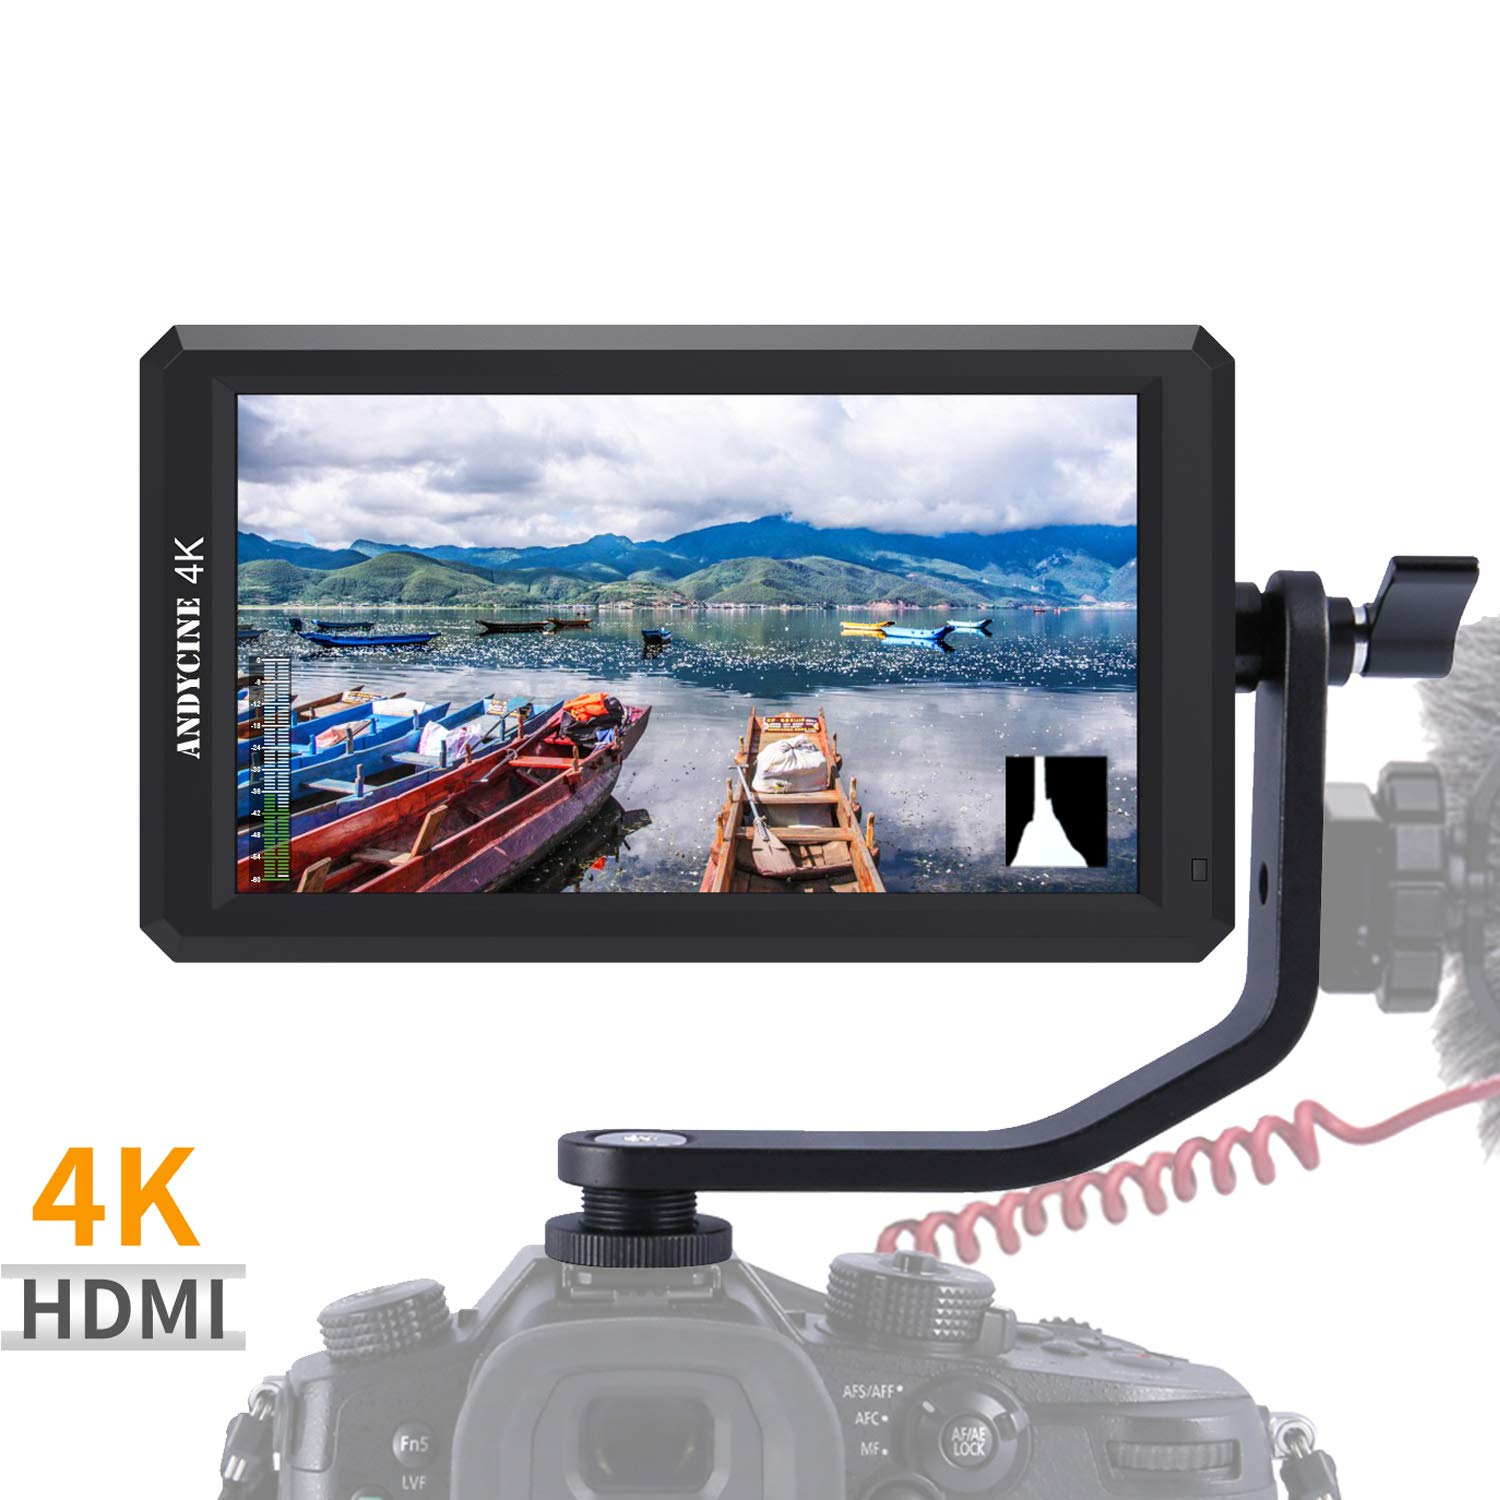 ANDYCINE A6 5 7 Inch HDMI Field Monitor 1920x1080 DC 8V Power Output Swivel  Arm for Sony,Nikon,Canon DSLR and Gimbals